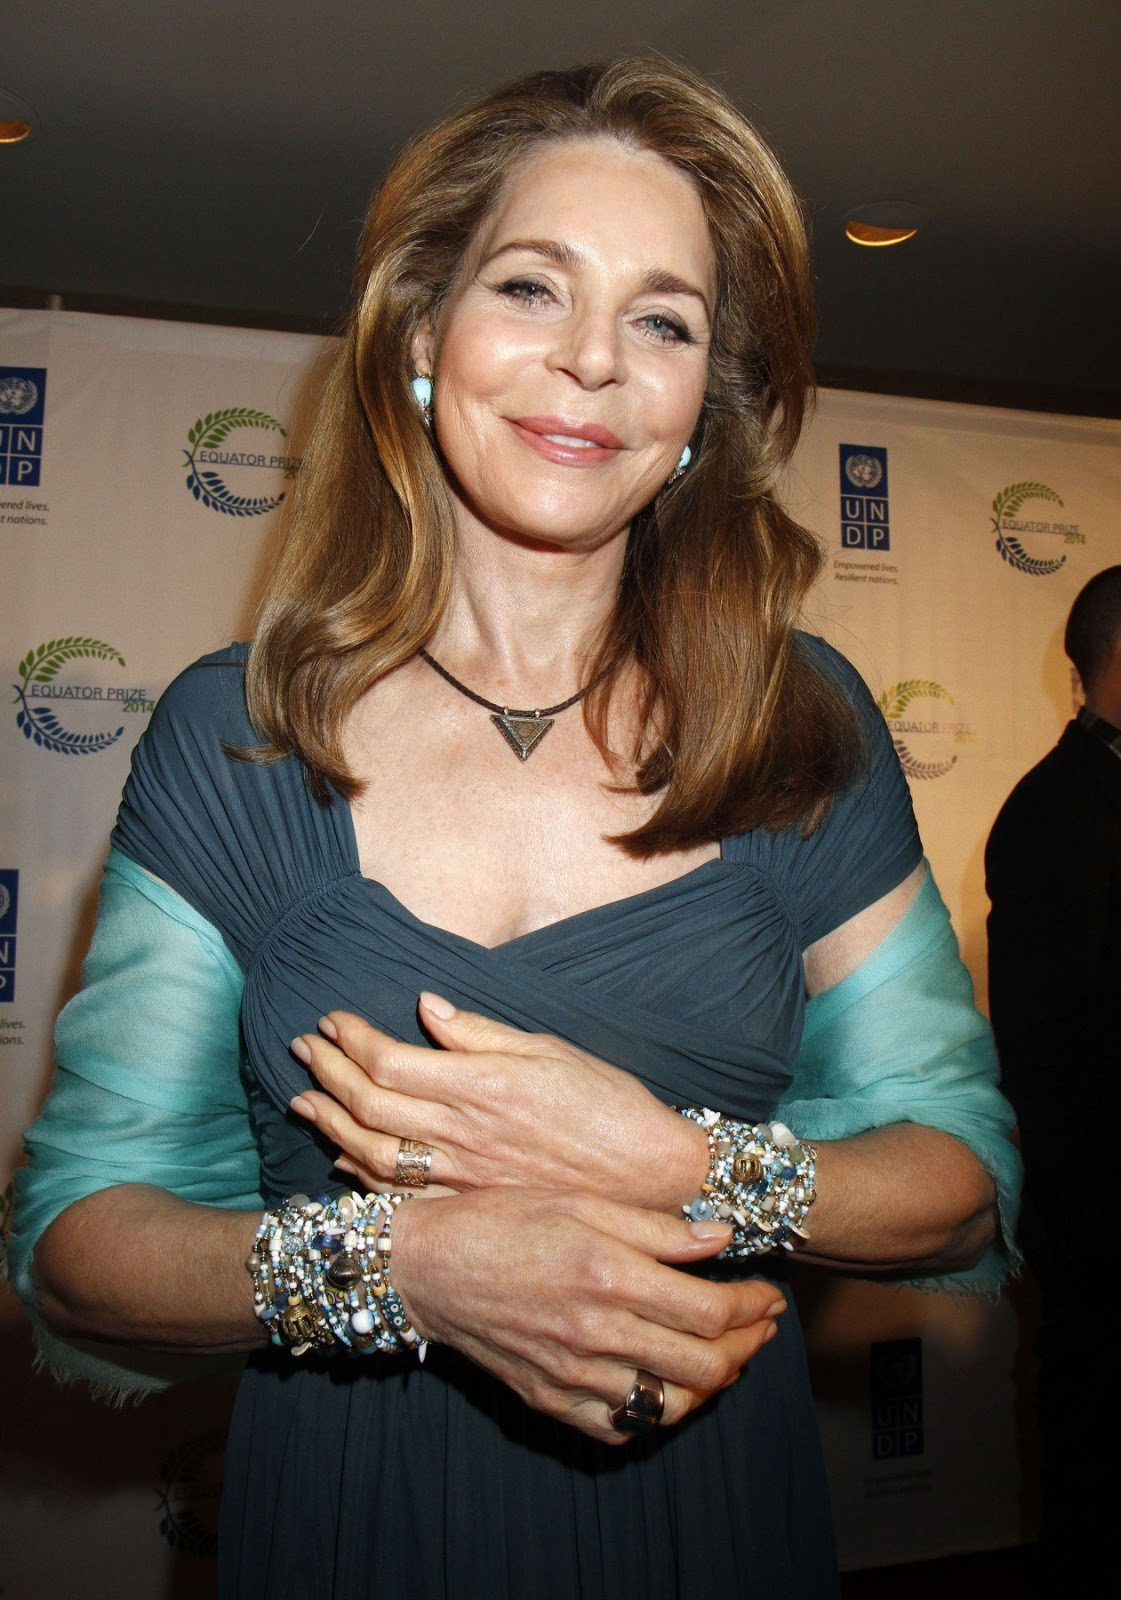 The United Nations Equator Prize Gala -Queen Noor